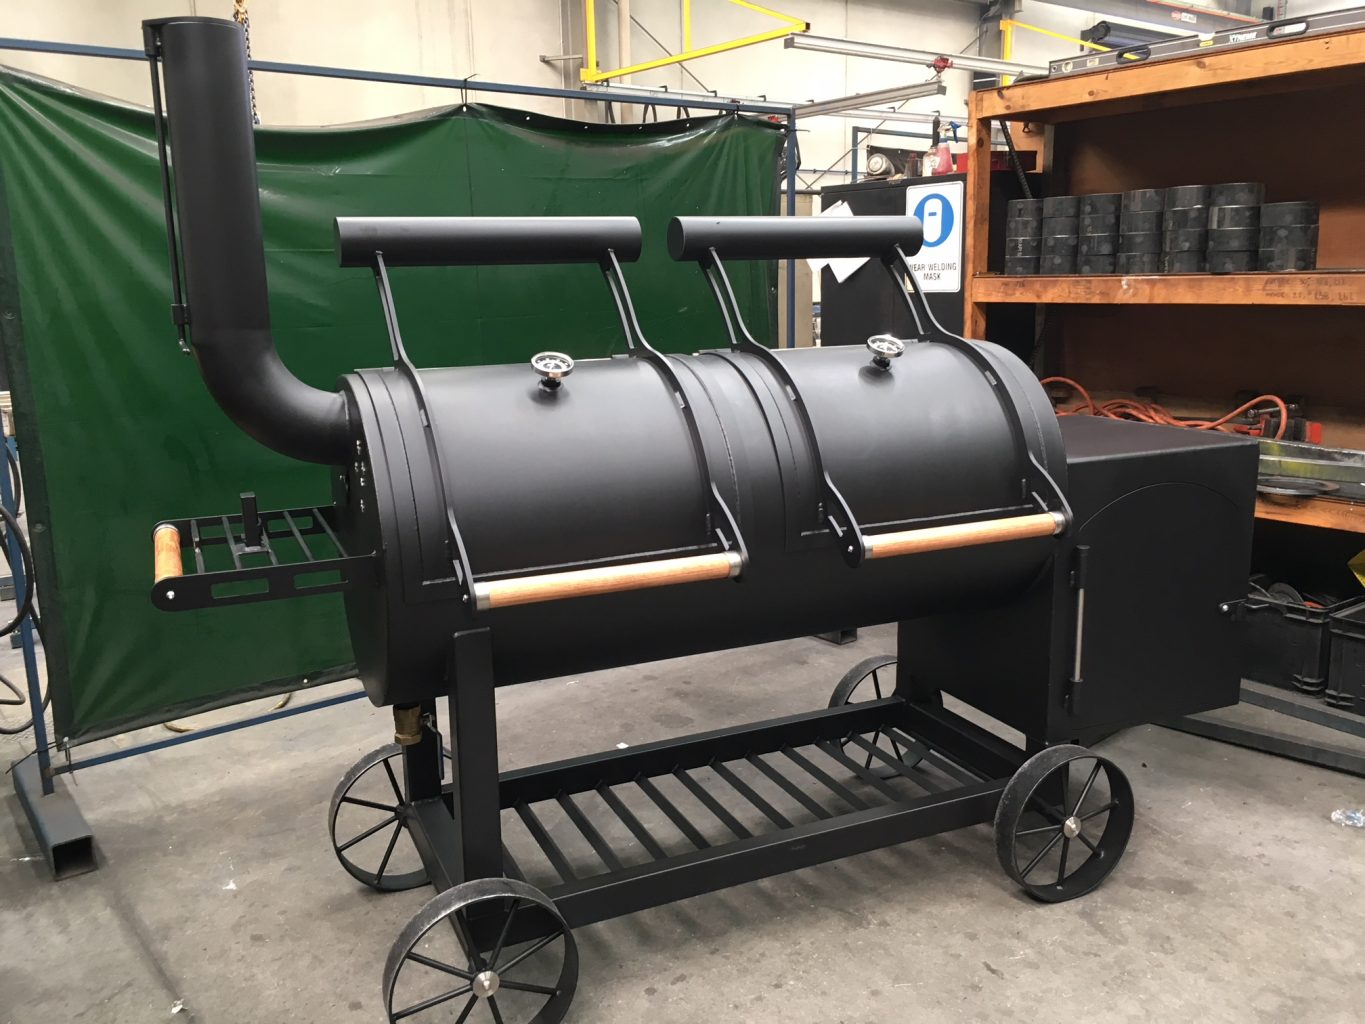 SC660 Offset Smoker Barbecue Australian Handcrafted Barbecues